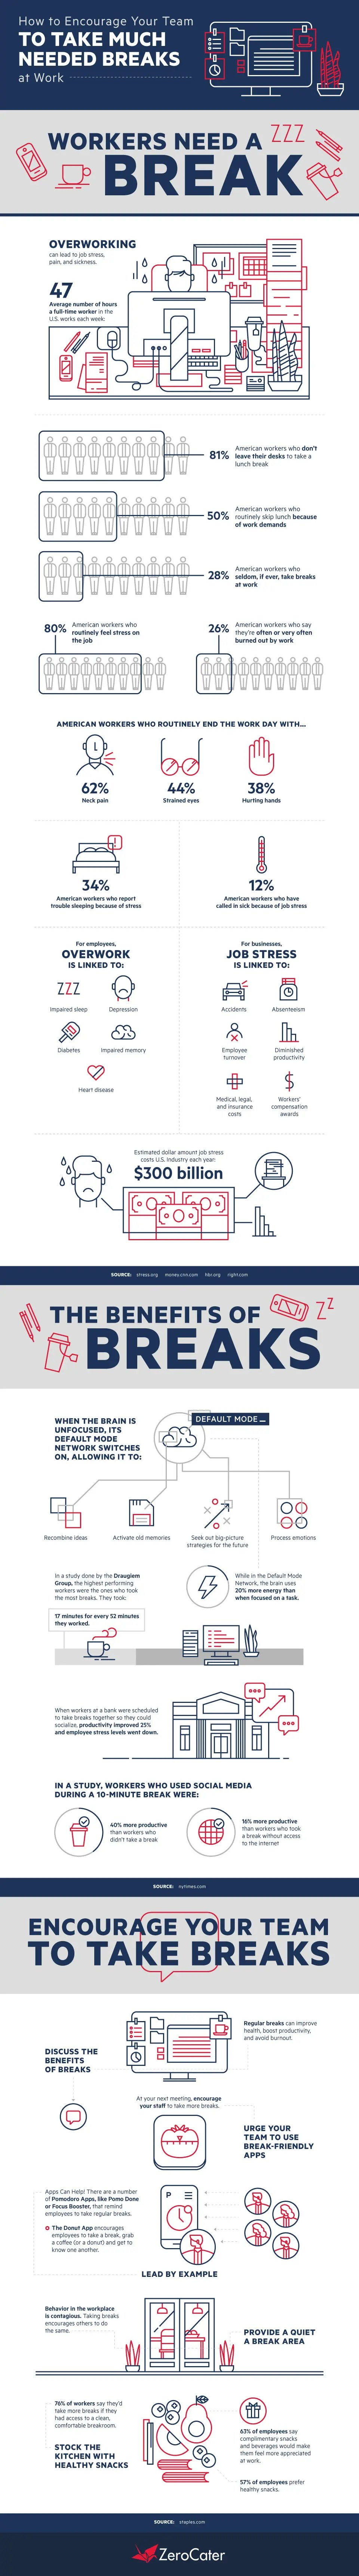 How to Encourage Your Team to Take Much Needed Breaks at Work Infographic